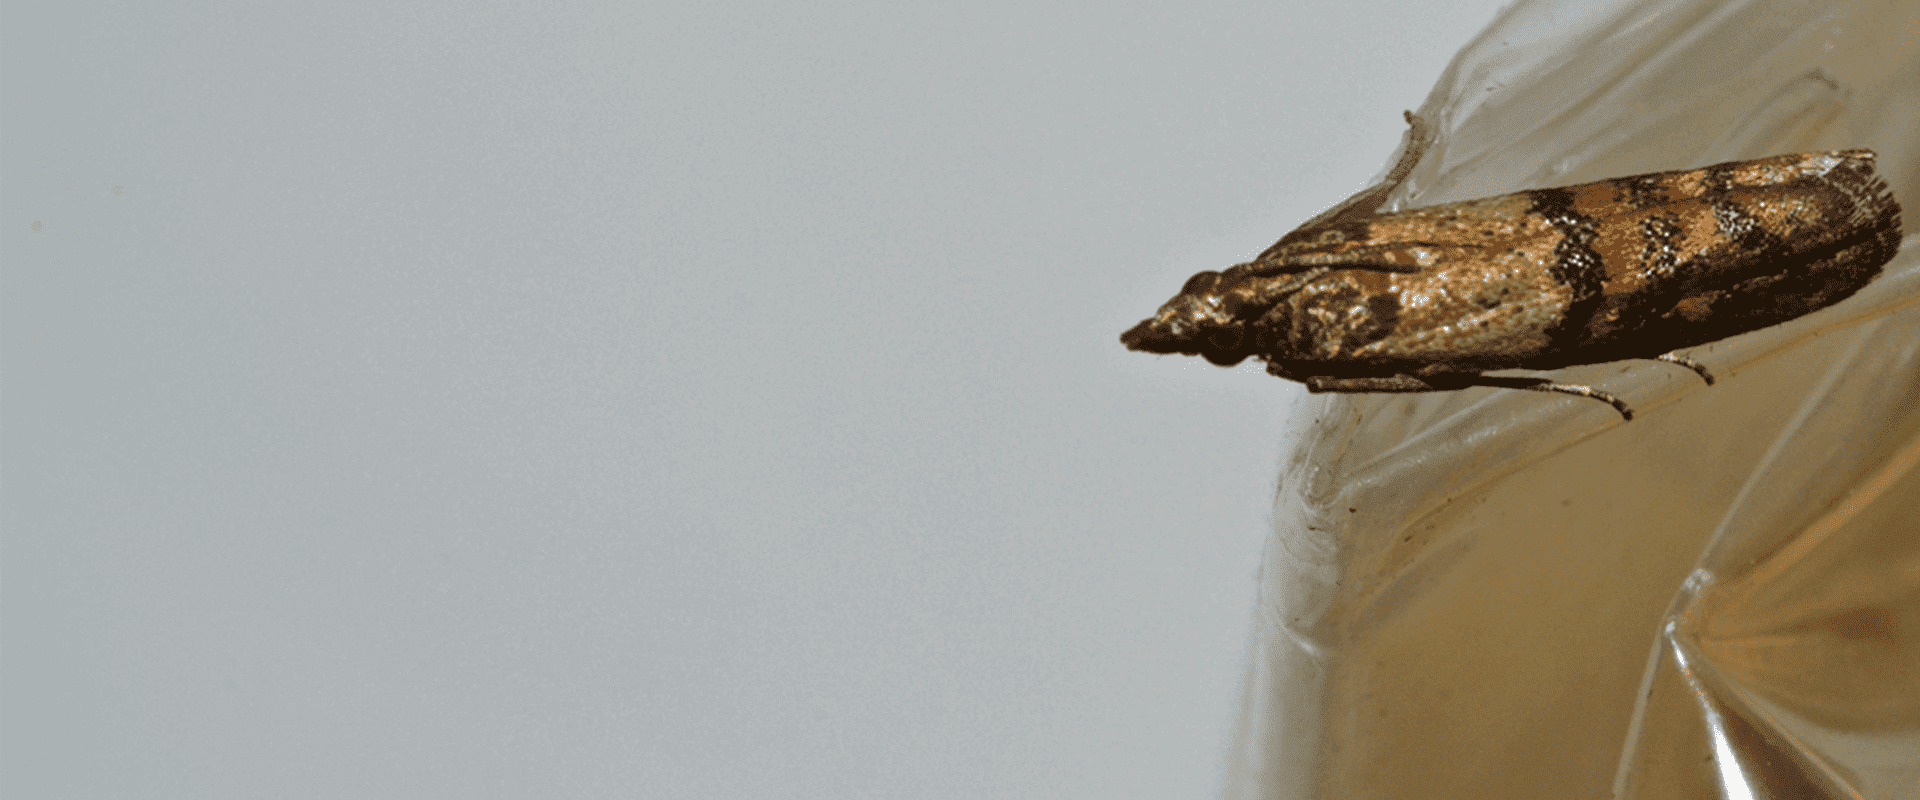 washington dc home with an indian meal moth problem